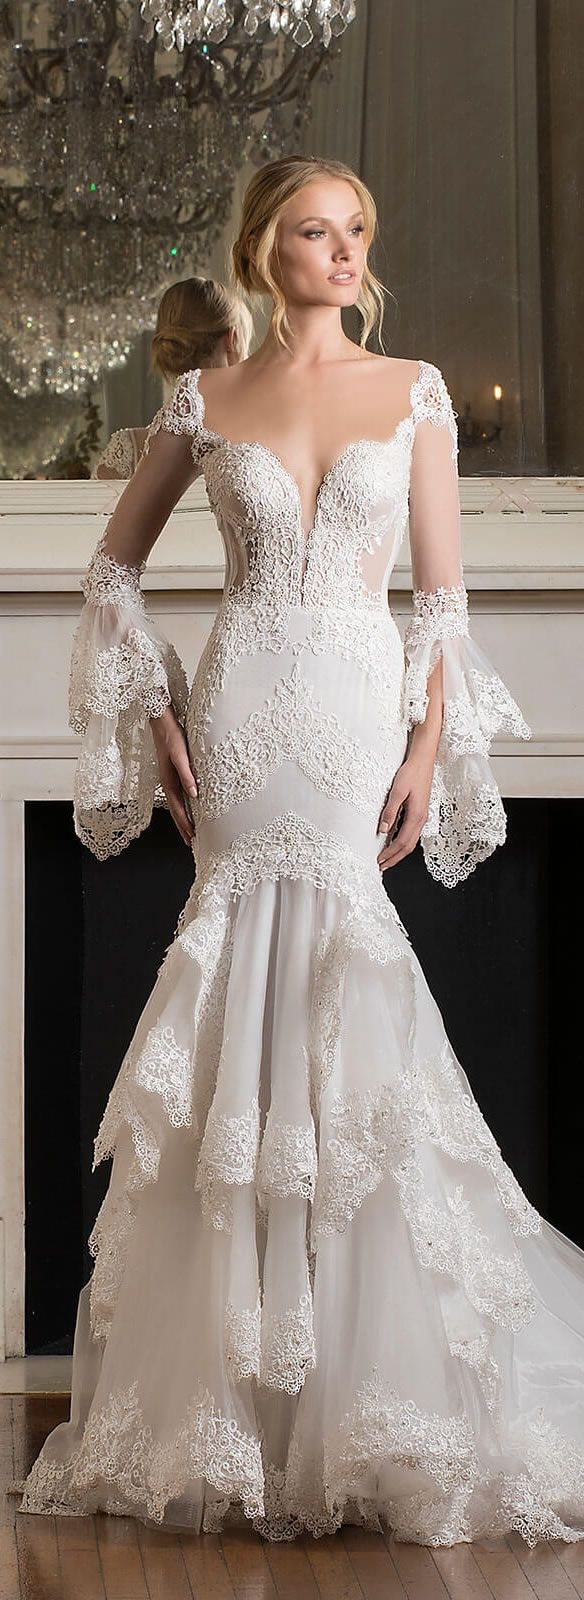 Luxe Romantic Bohemian Chic |   Pnina Tornai Wedding Dress | Dimensions Collecti…